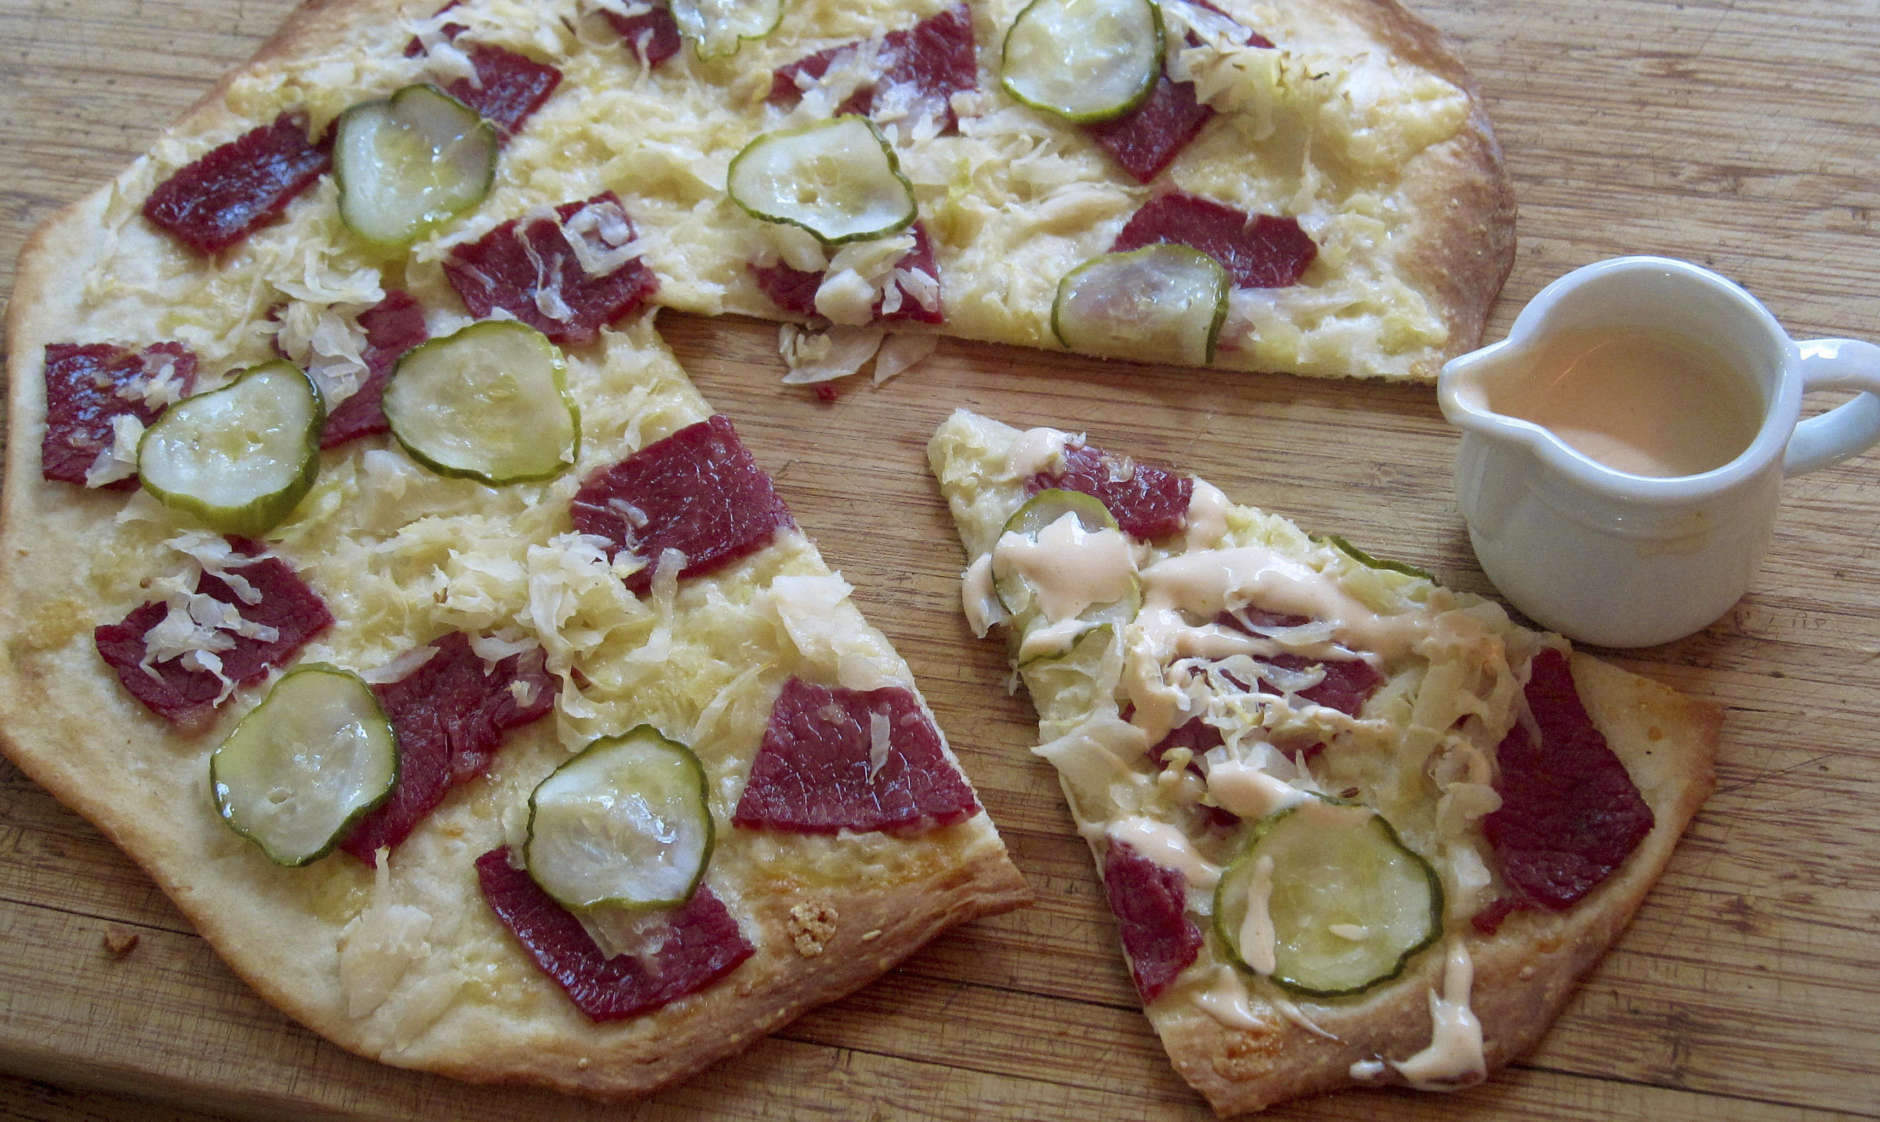 This April 2017 photo shows a Reuben pizza in New York. This dish is from a recipe by Sara Moulton. (Sara Moulton via AP)